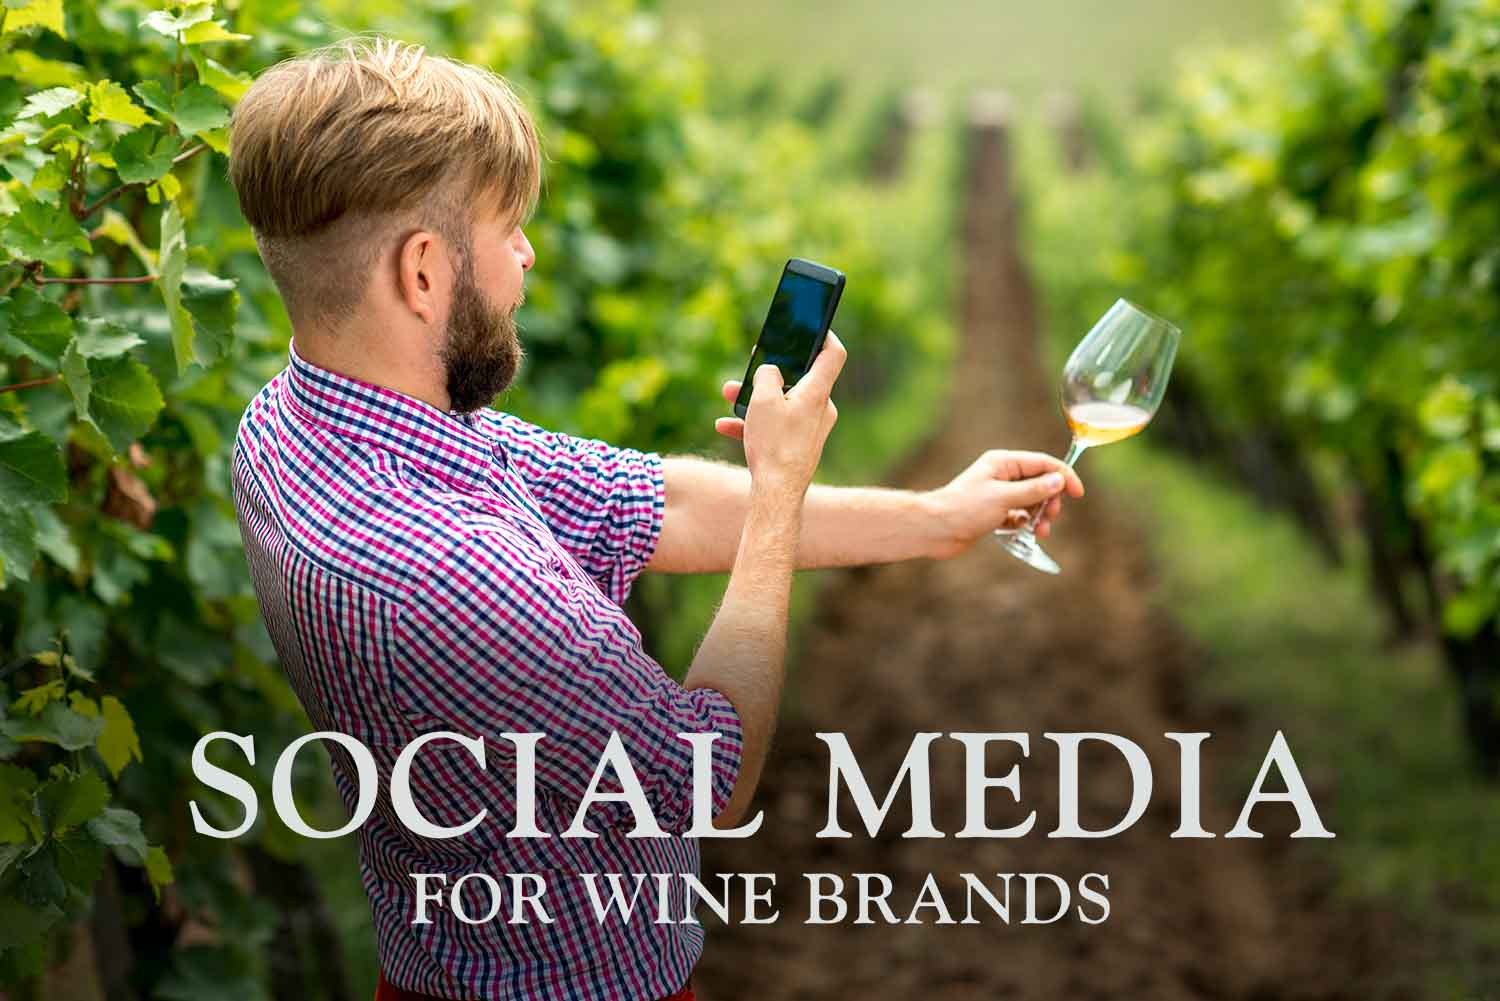 Social Media for Wineries